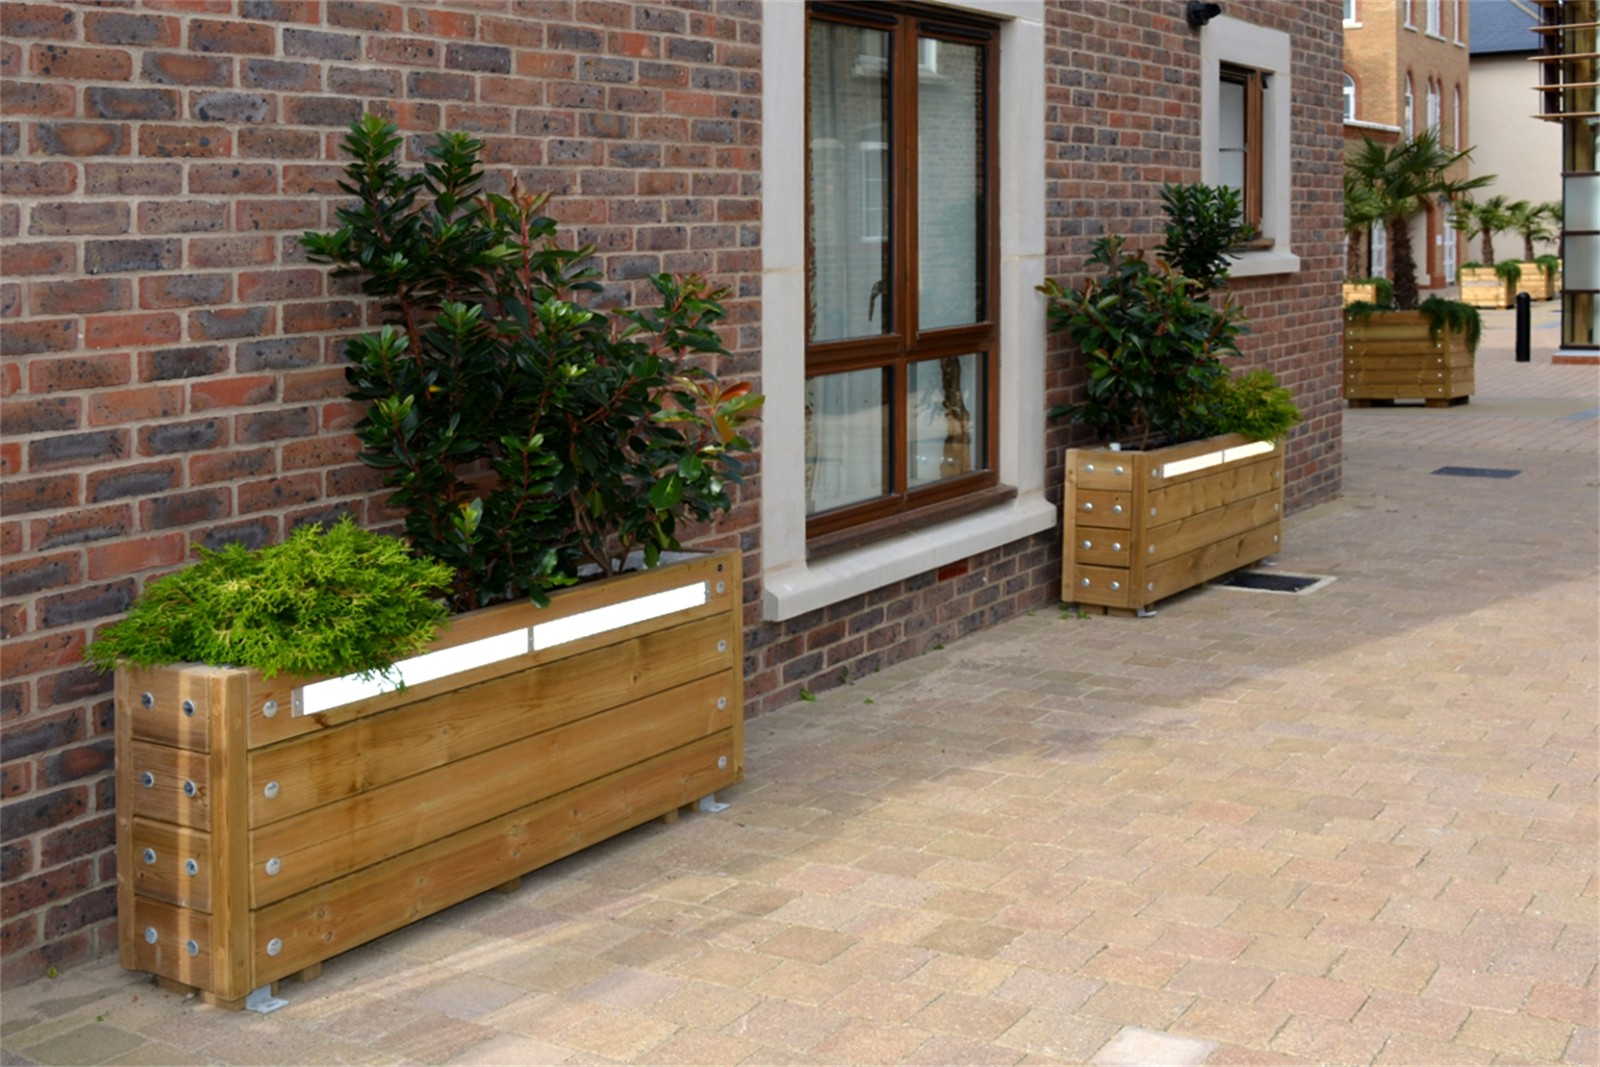 40pgr44 - Grenadier barrier planters with reflective strips